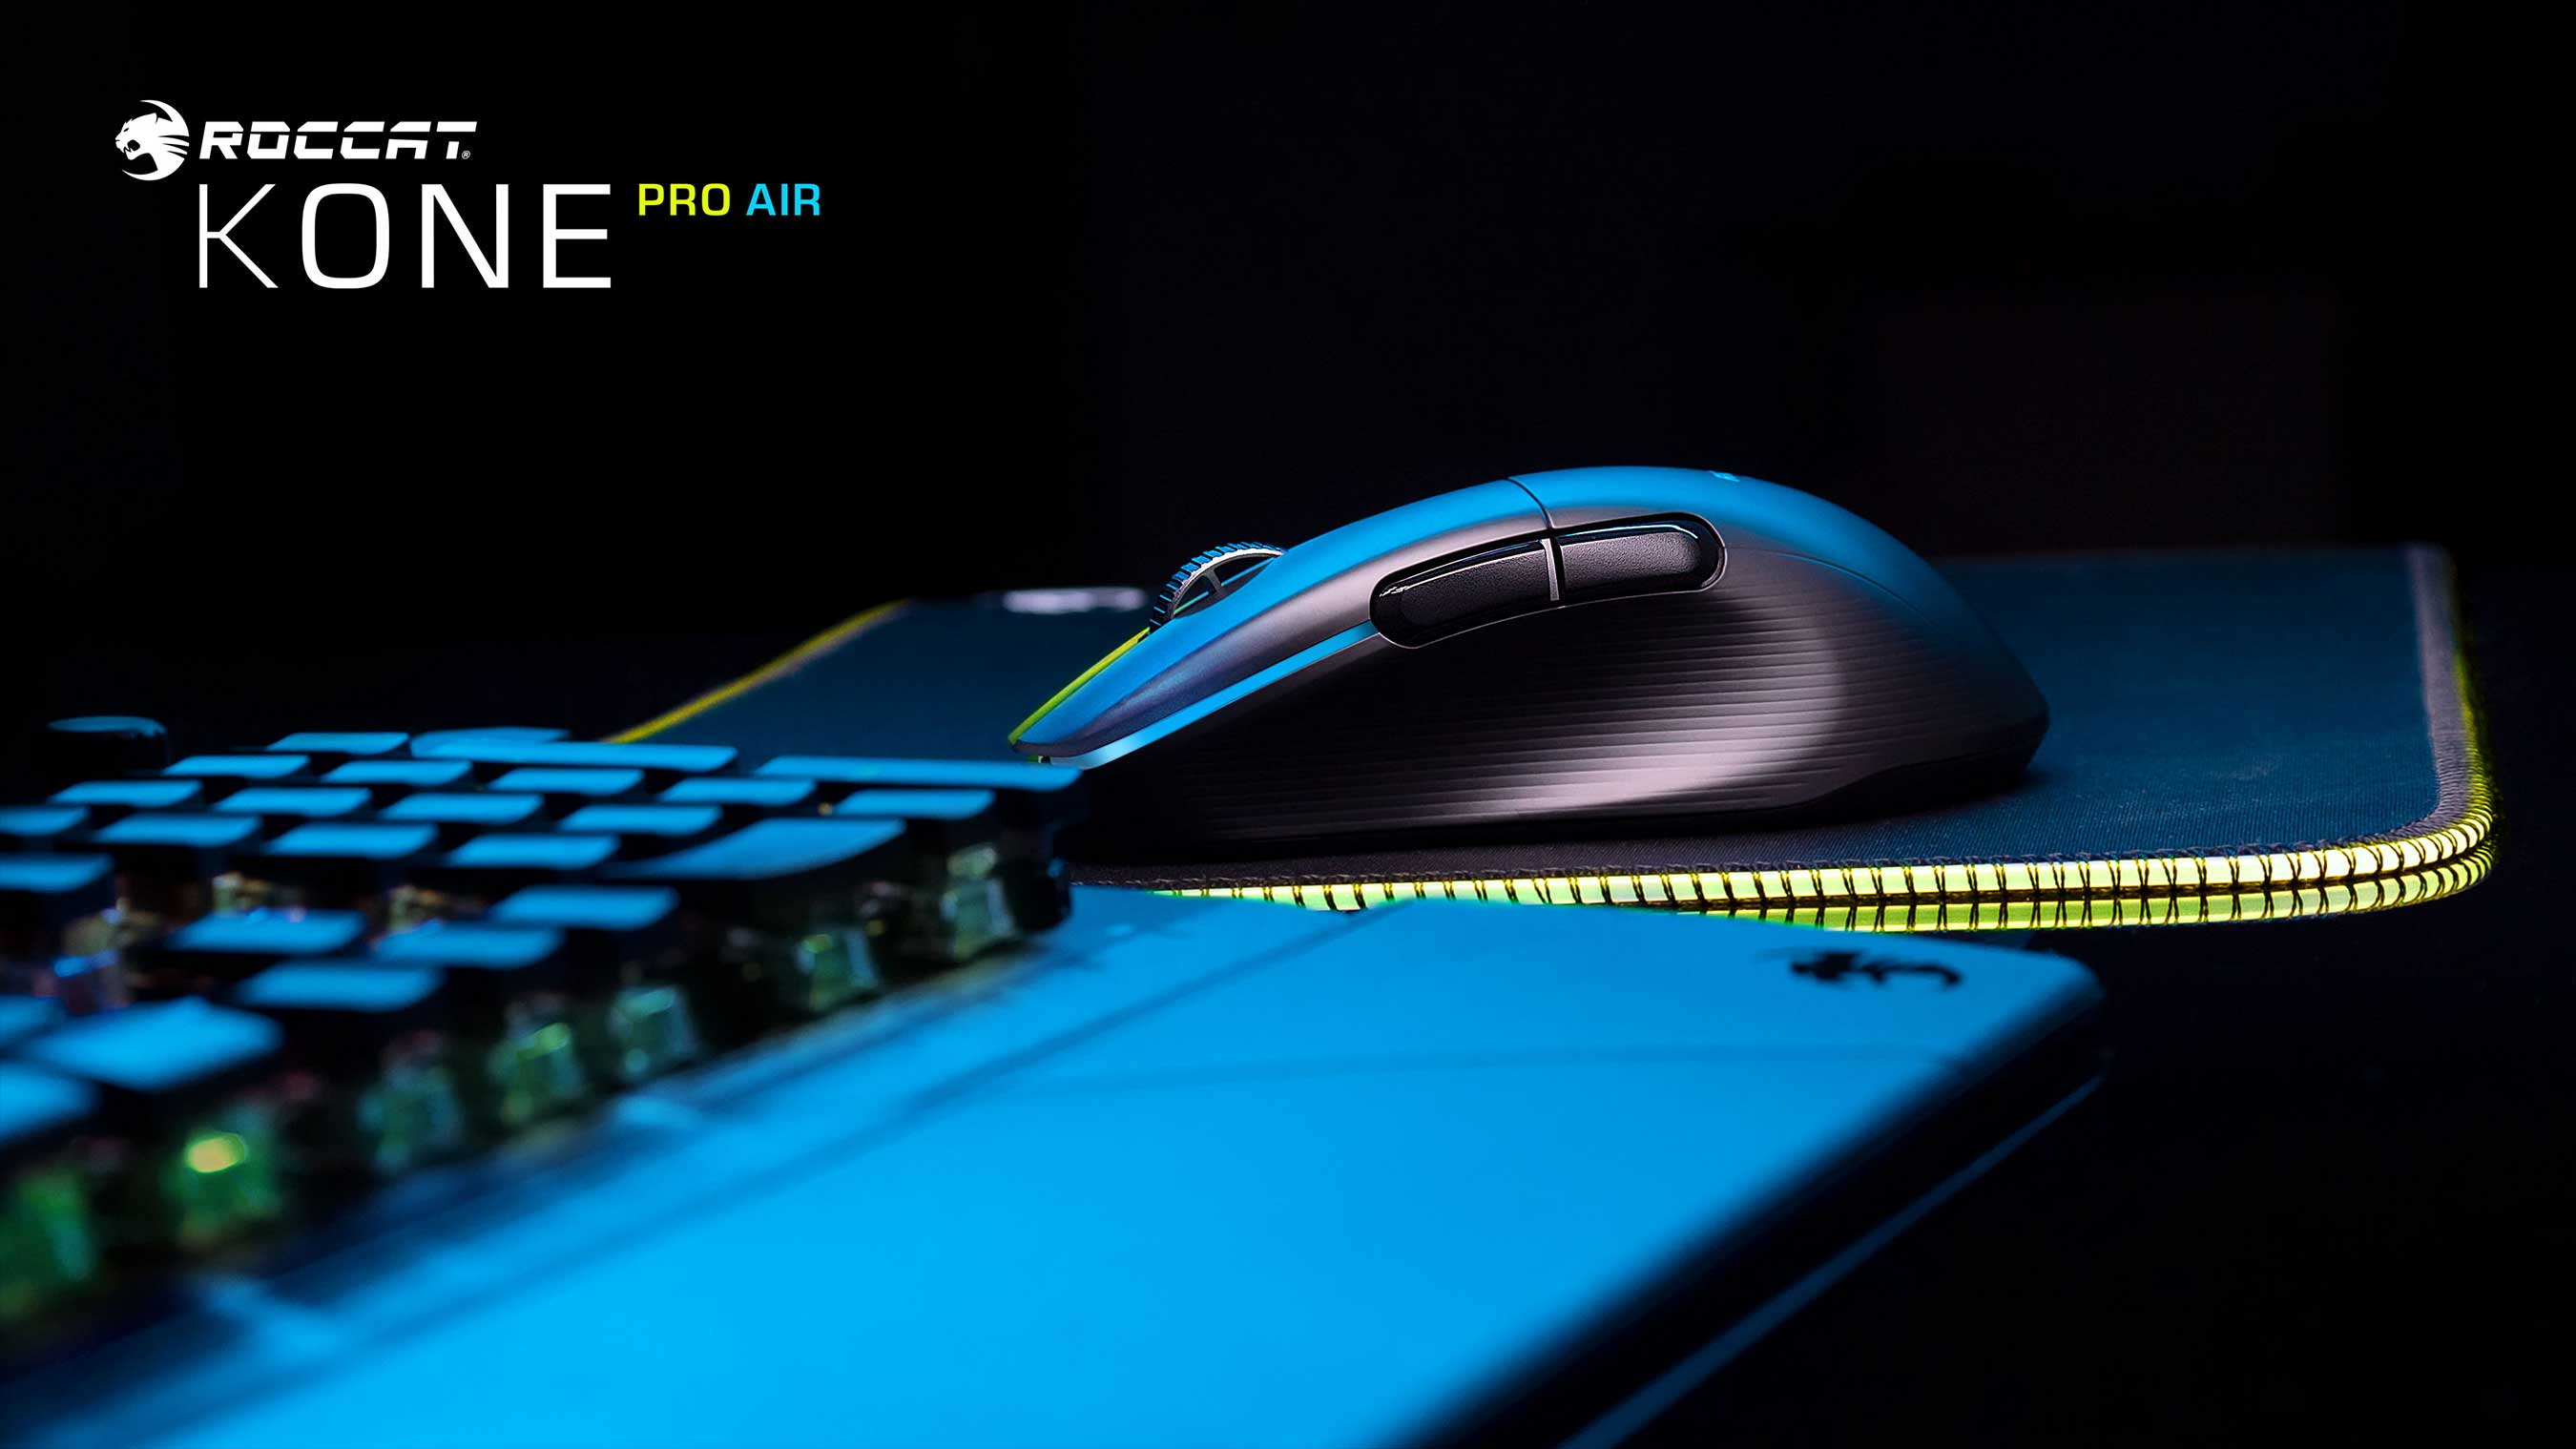 TURTLE BEACH'S AWARD-WINNING ROCCAT PC ACCESSORY BRAND UNVEILS THE ALL-NEW KONE PRO SERIES PC GAMING MICE